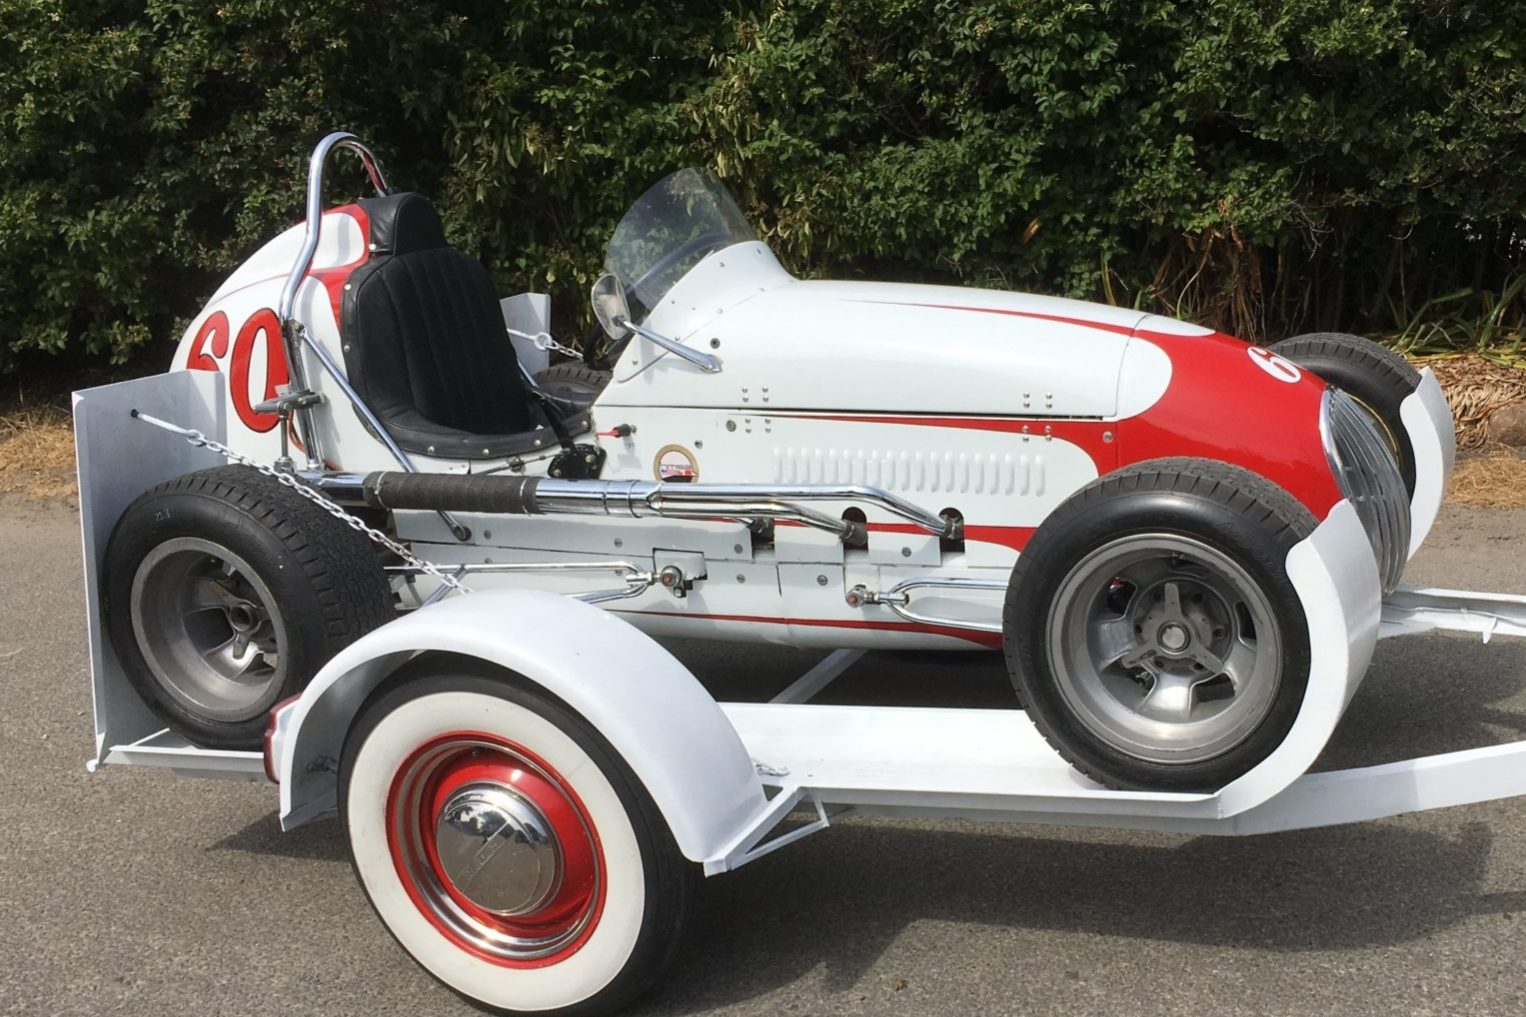 hight resolution of 1948 kurtis midget race car for sale on bat auctions sold for 23 500 on may 9 2019 lot 18 666 bring a trailer